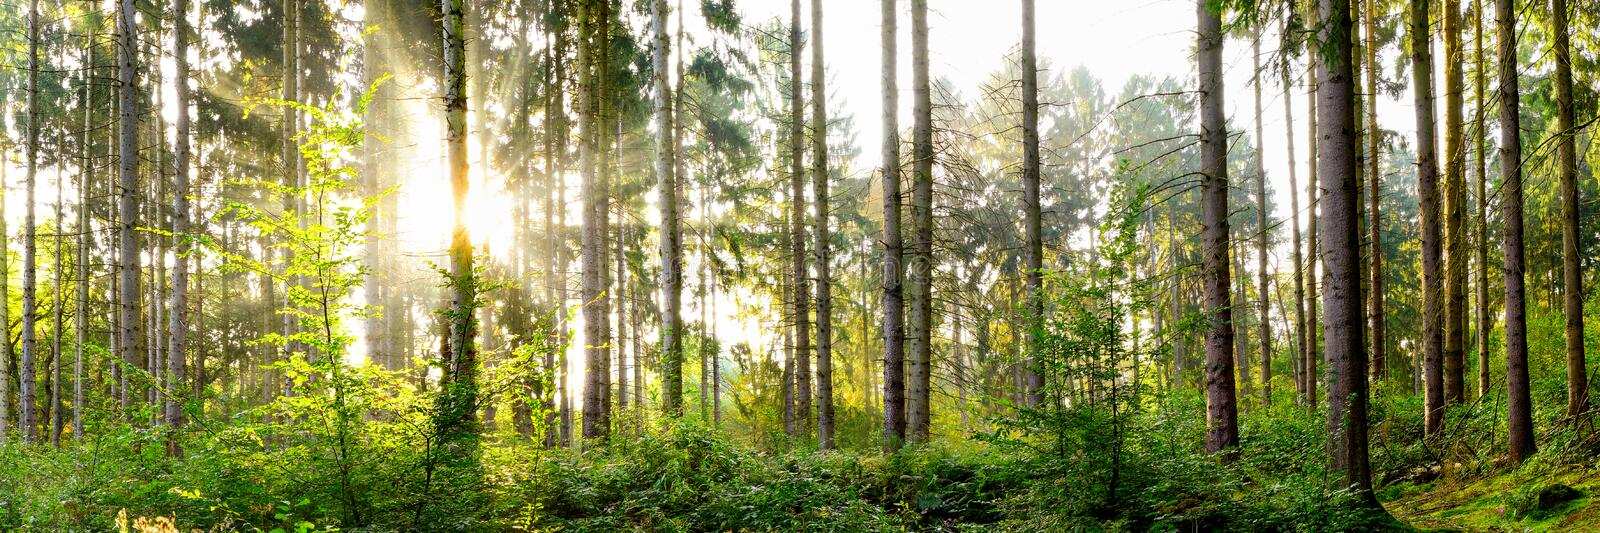 Beautiful forest with bright sun. Beautiful forest panorama with bright sun shining through the trees royalty free stock photos